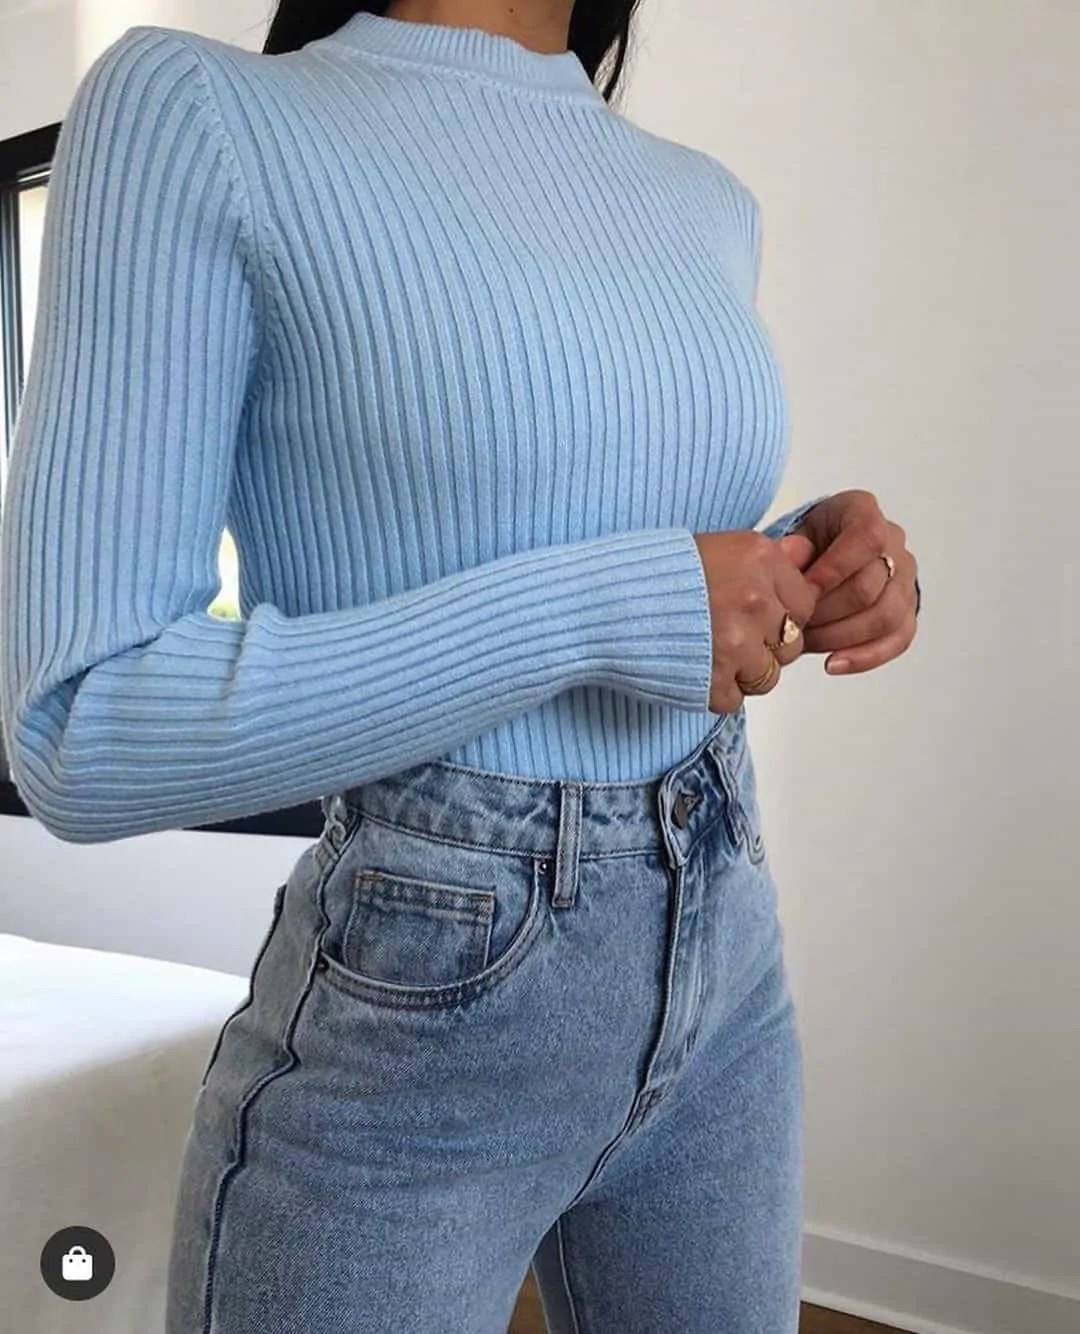 100+ fashion inspo outfits that you have to see no matter what your style is 15